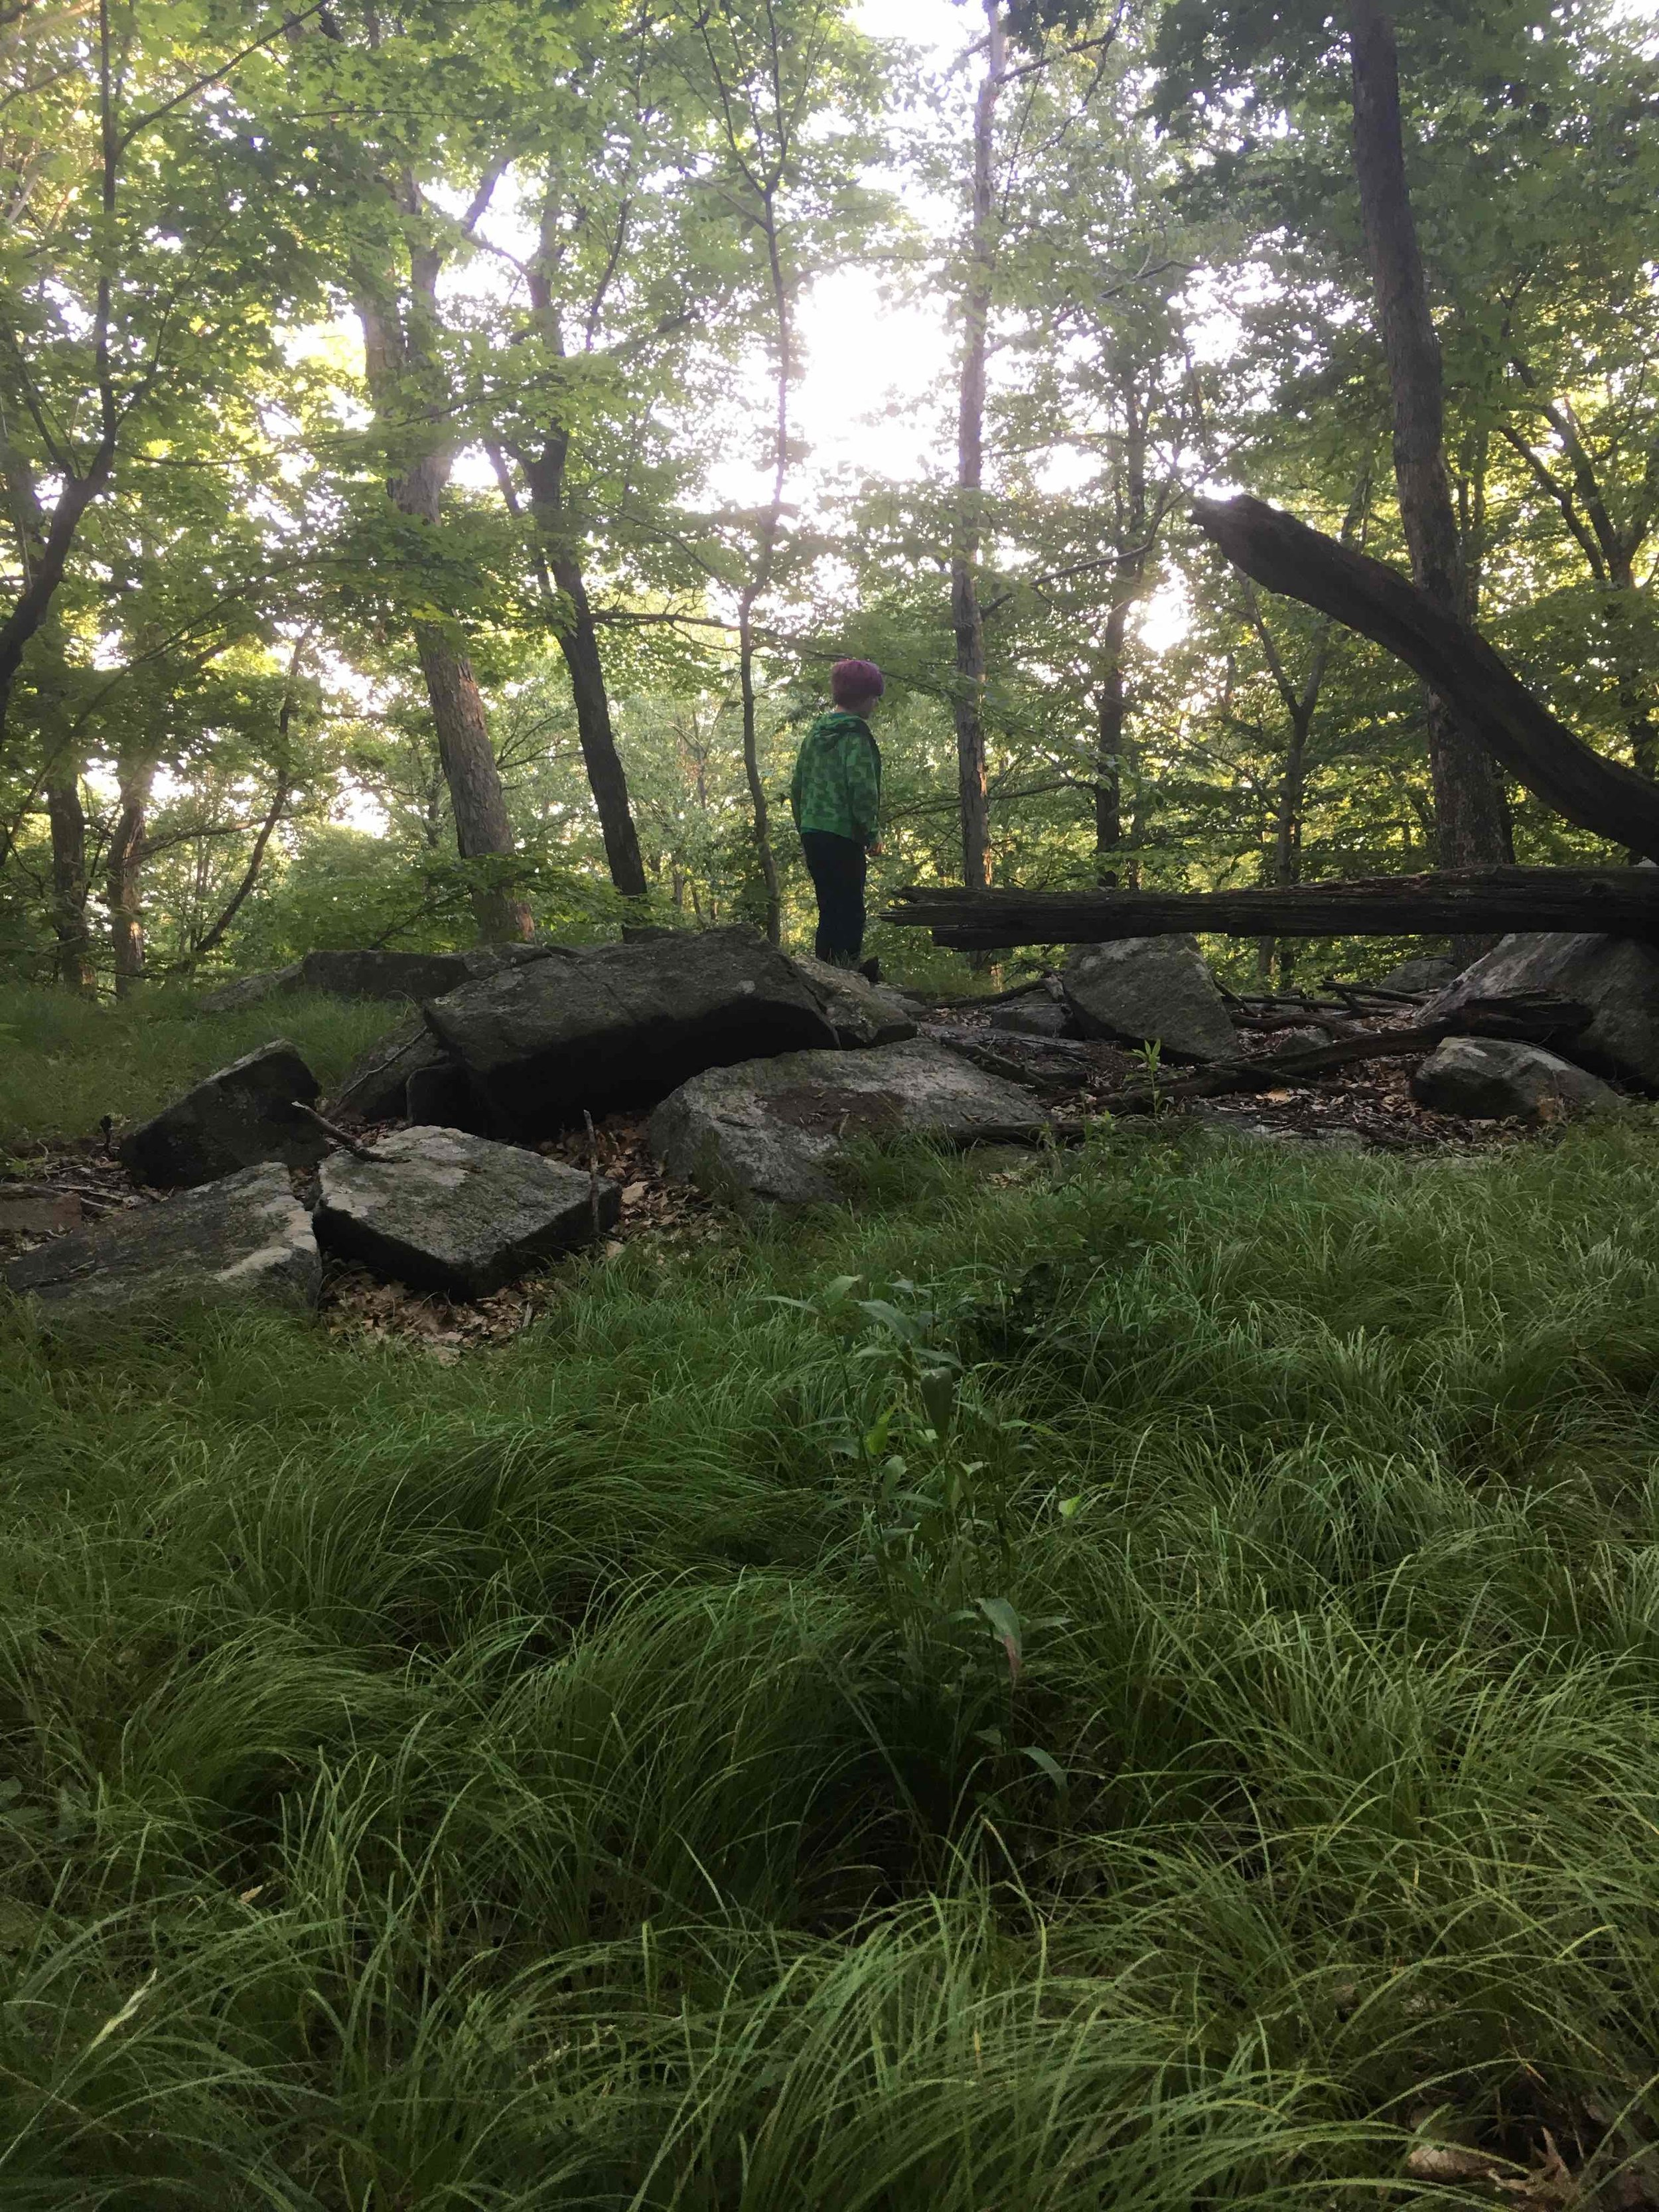 Being bored in nature